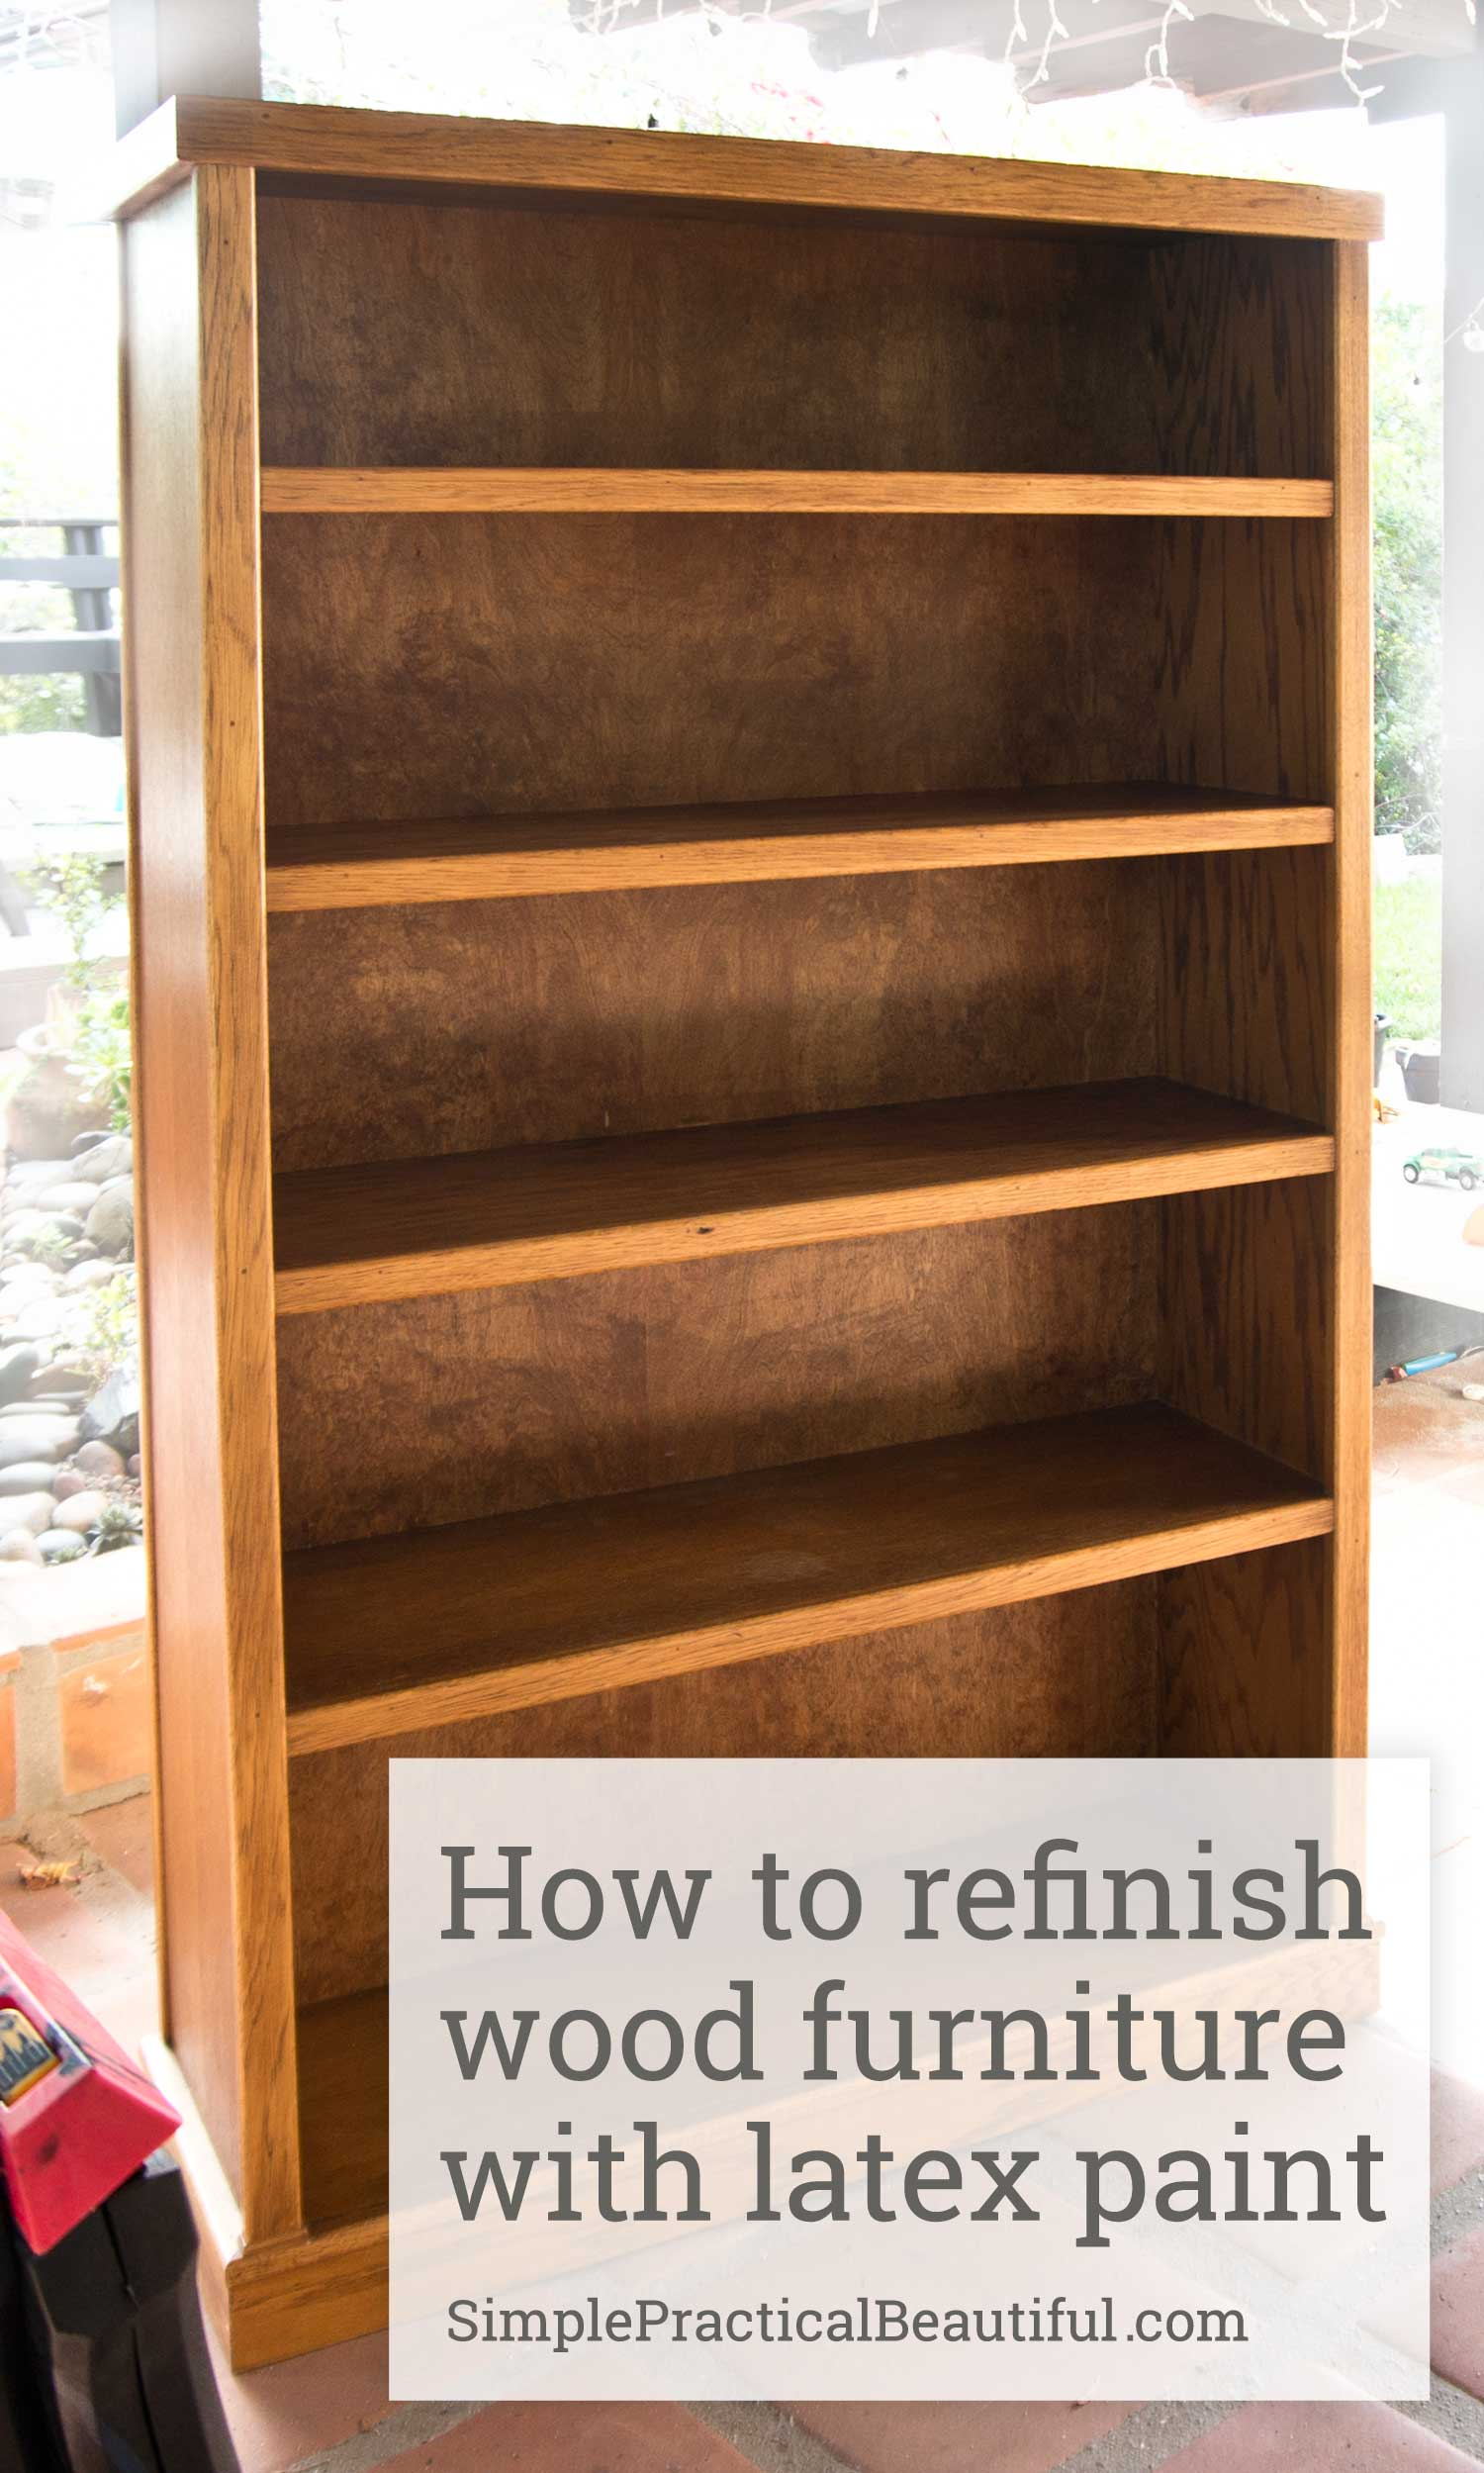 Refinishing A Wood Bookcase  Simple Practical Beautiful. Kitchen Storage Containers Set. French Country Kitchen Paint Colors. Country Kitchen Items. Kitchen Storage Carts Cabinets. Country Kitchen Christiansburg. Kitchen Bar Stools Modern. Hidden Kitchen Storage. Campmate Kitchen Organizer